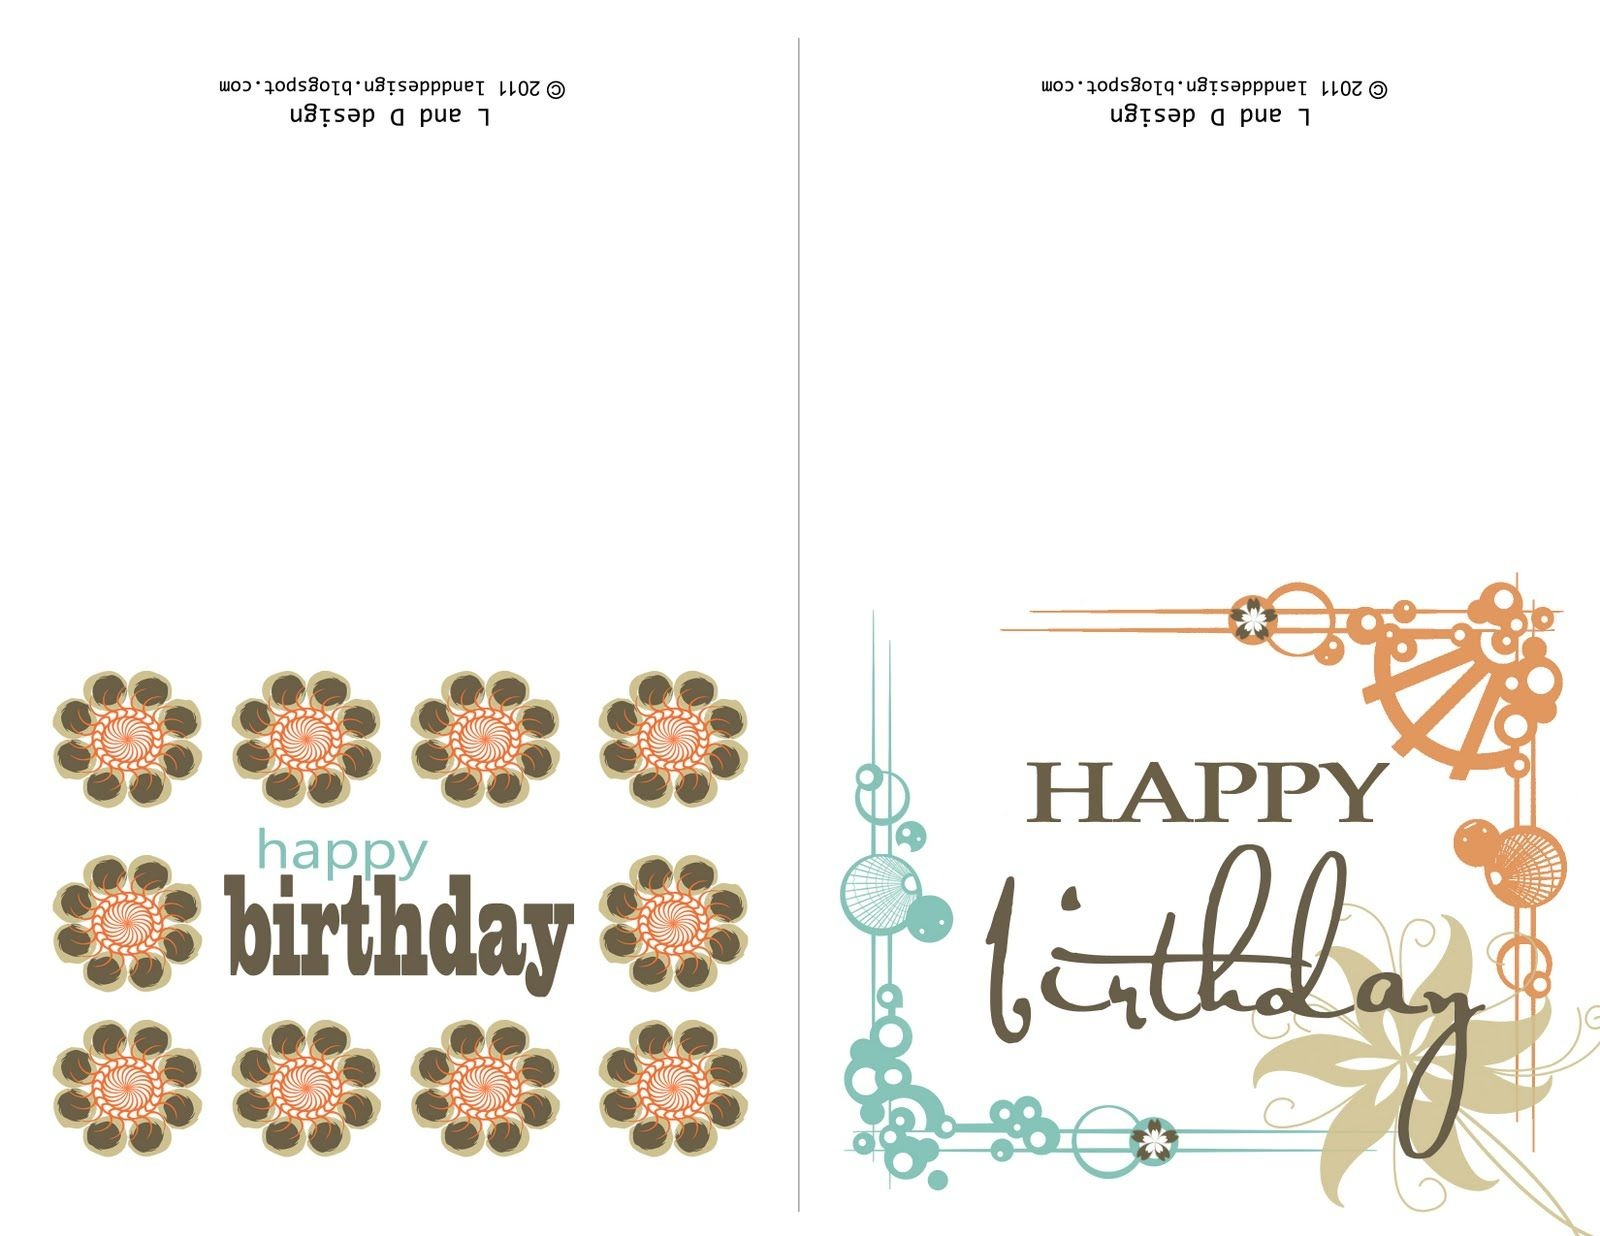 Printable Birthday Cards For Mom | Happy Birthday To You | Free - Free Printable Birthday Cards For Mom